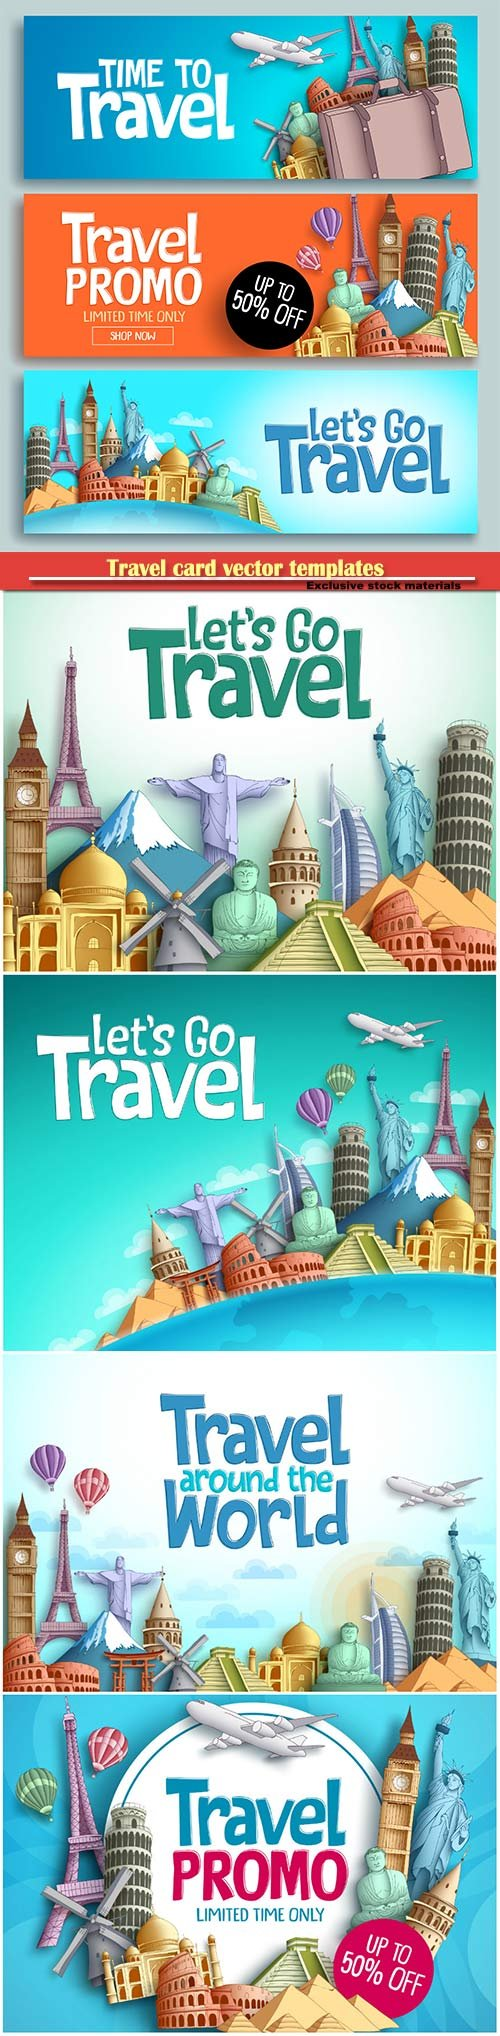 Travel card vector templates